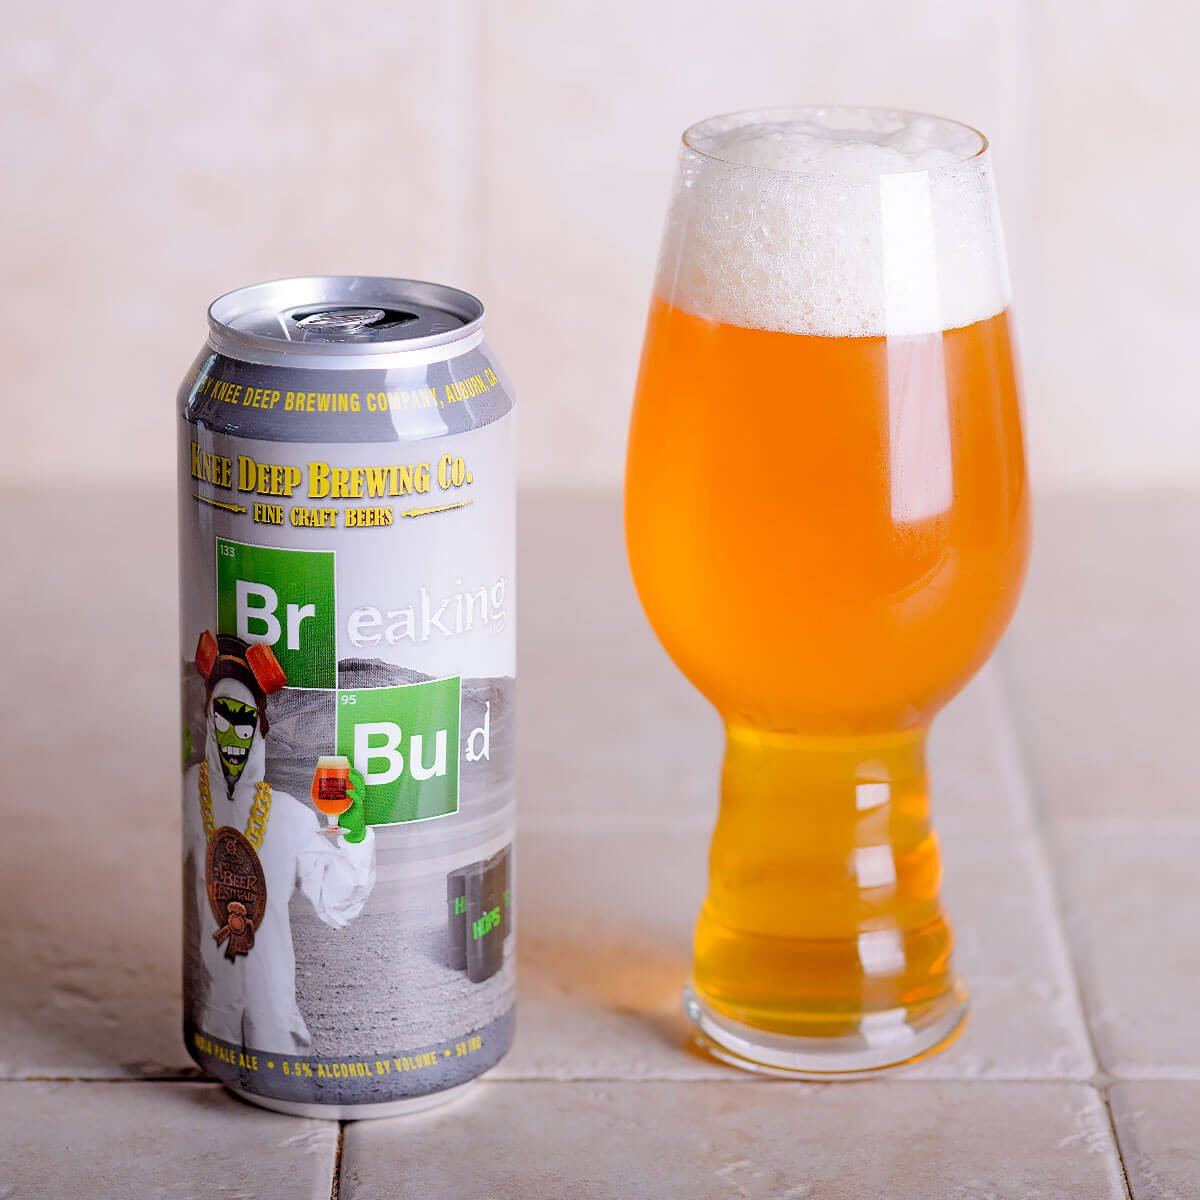 Breaking Bud, an American IPA by Knee Deep Brewing Co.